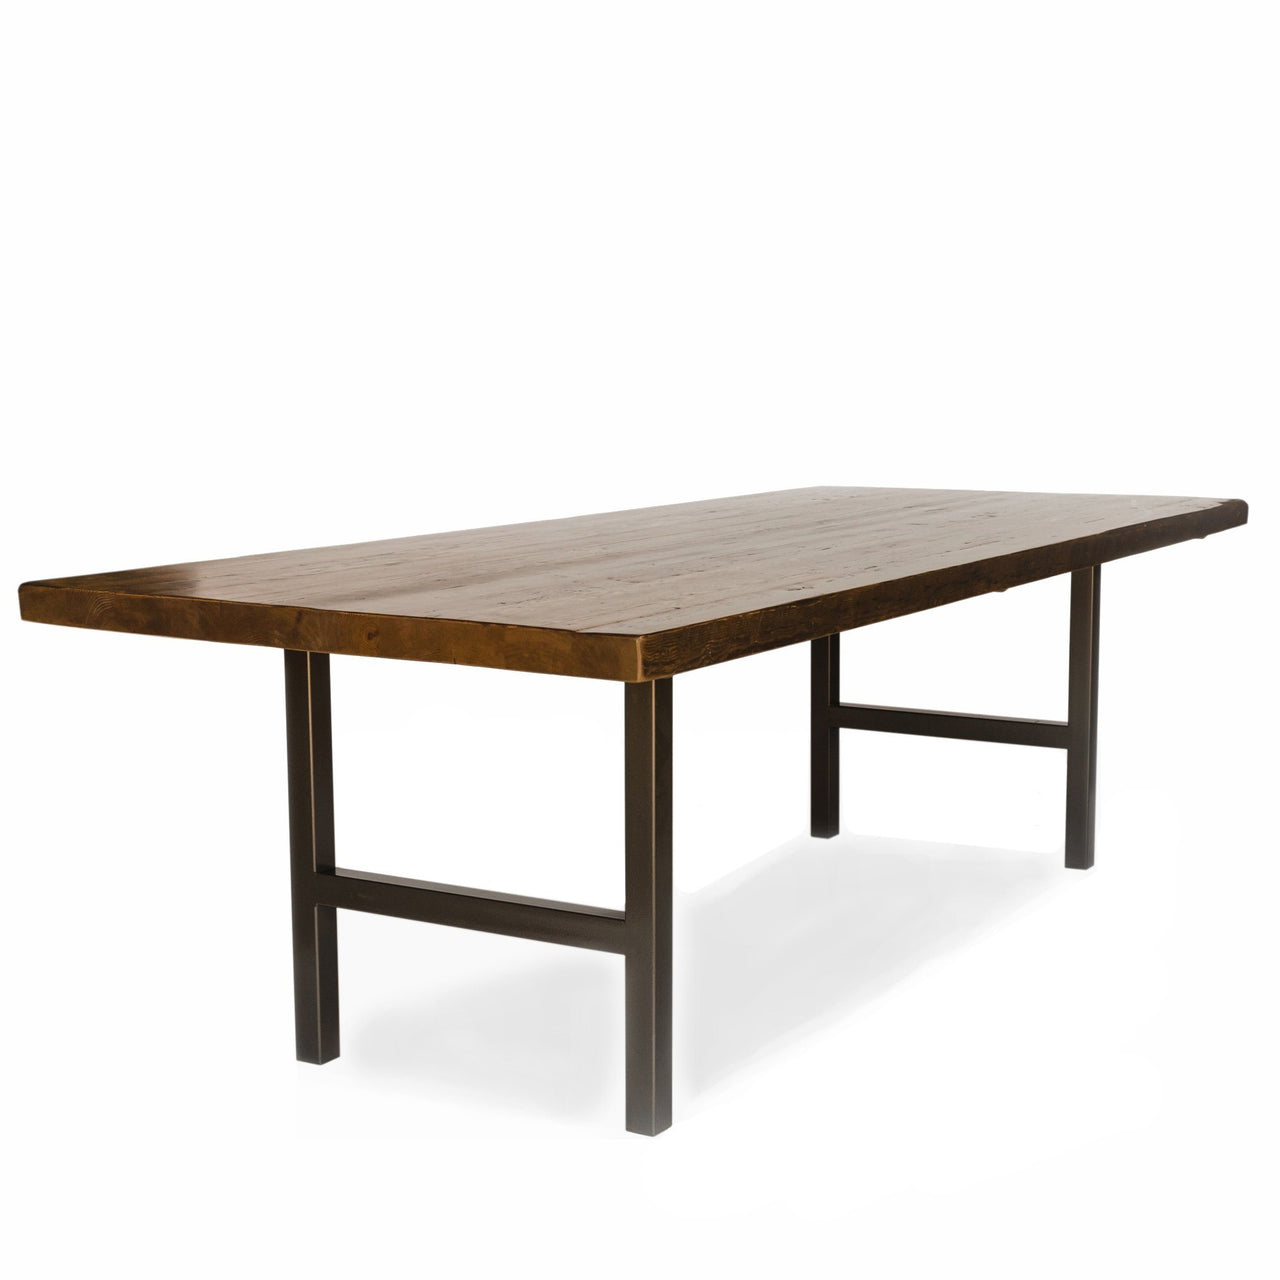 Urban Wood And Steel Conference Table with Narrow Base Style